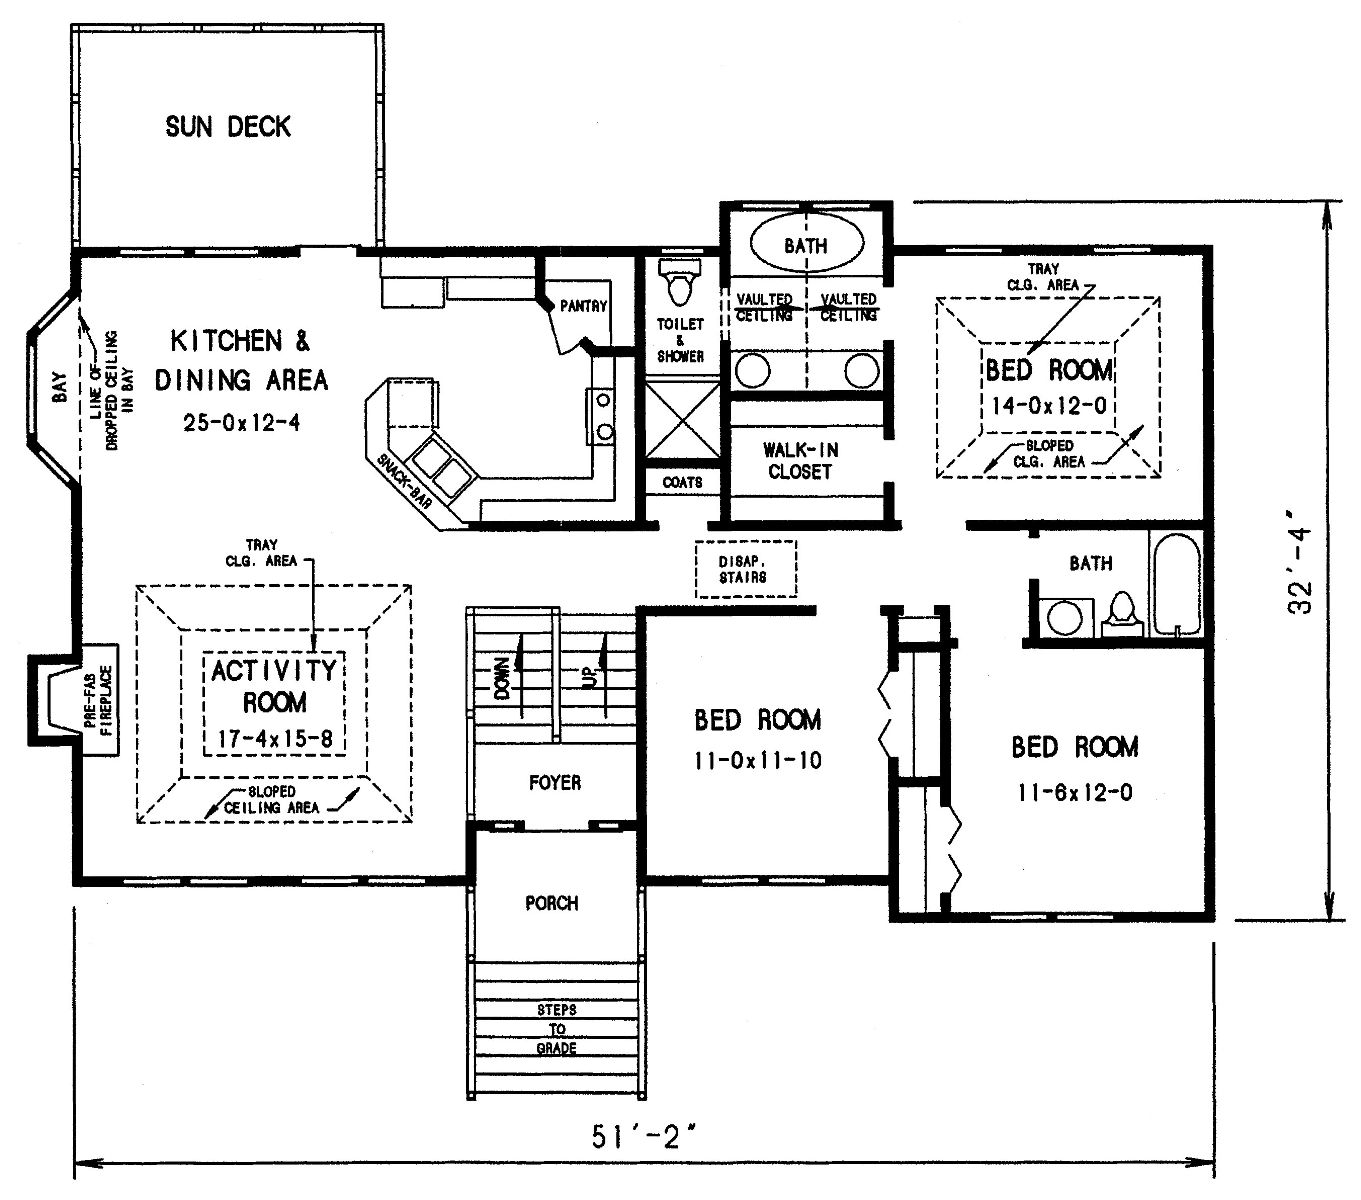 4 Bedroom Split Foyer Home Plans 4 Free Printable Images House